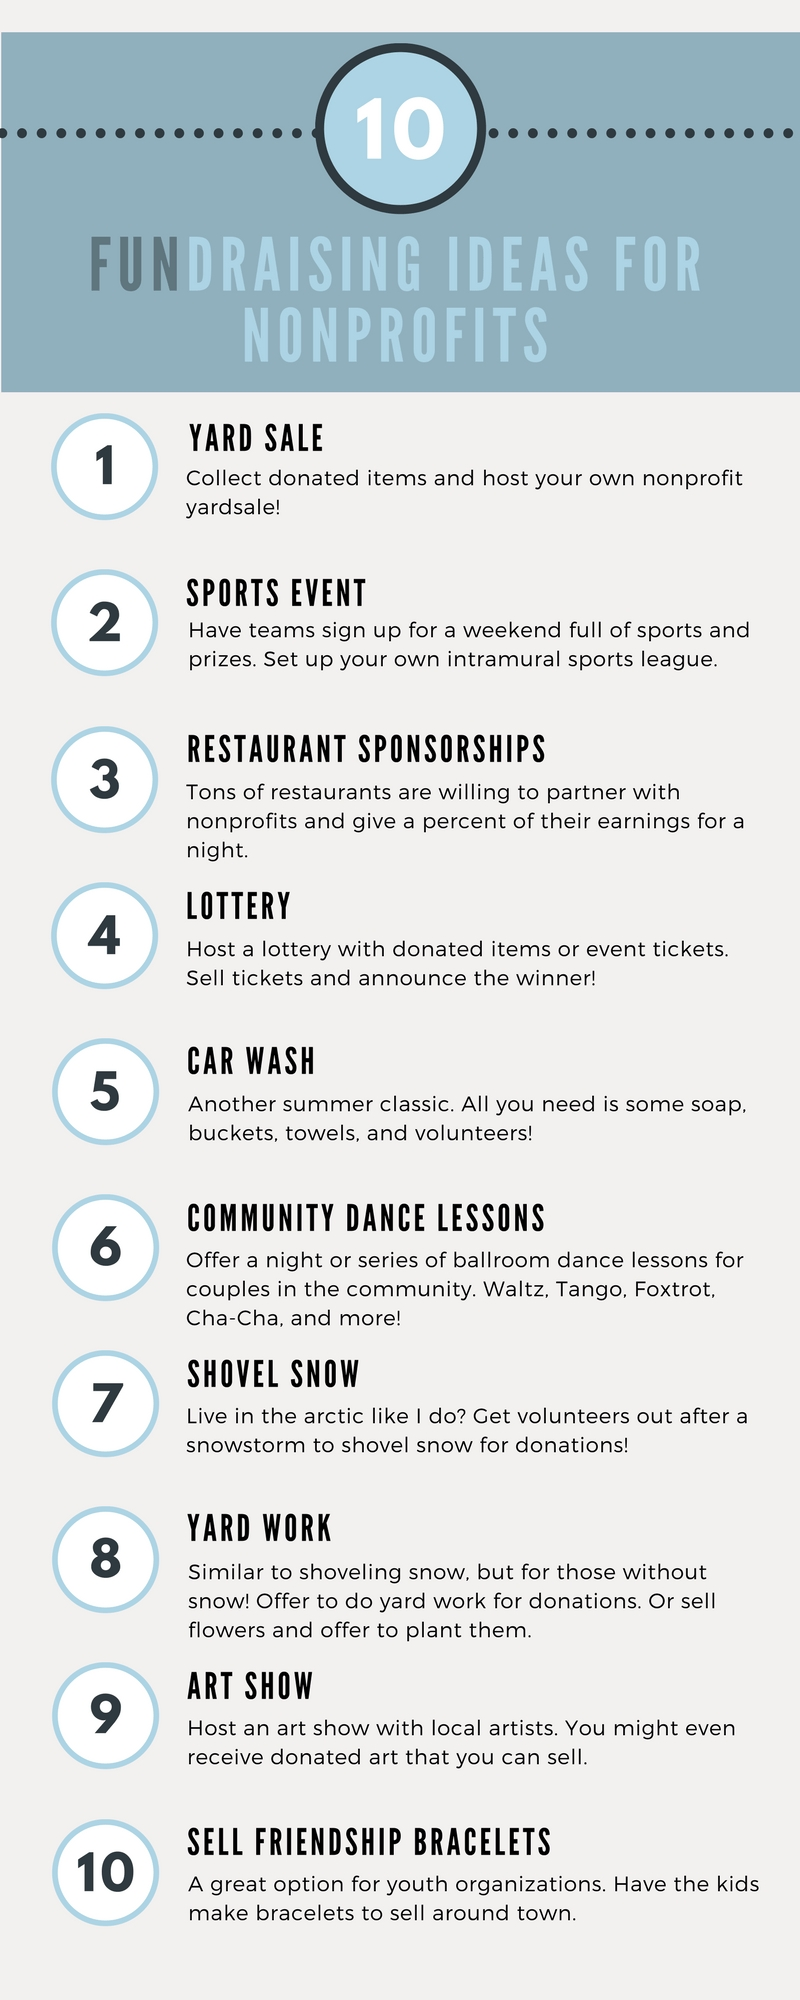 10 Spectacular Fundraising Ideas For College Organizations 50 nonprofit fundraising ideas fundraising ideas fundraising and 6 2020